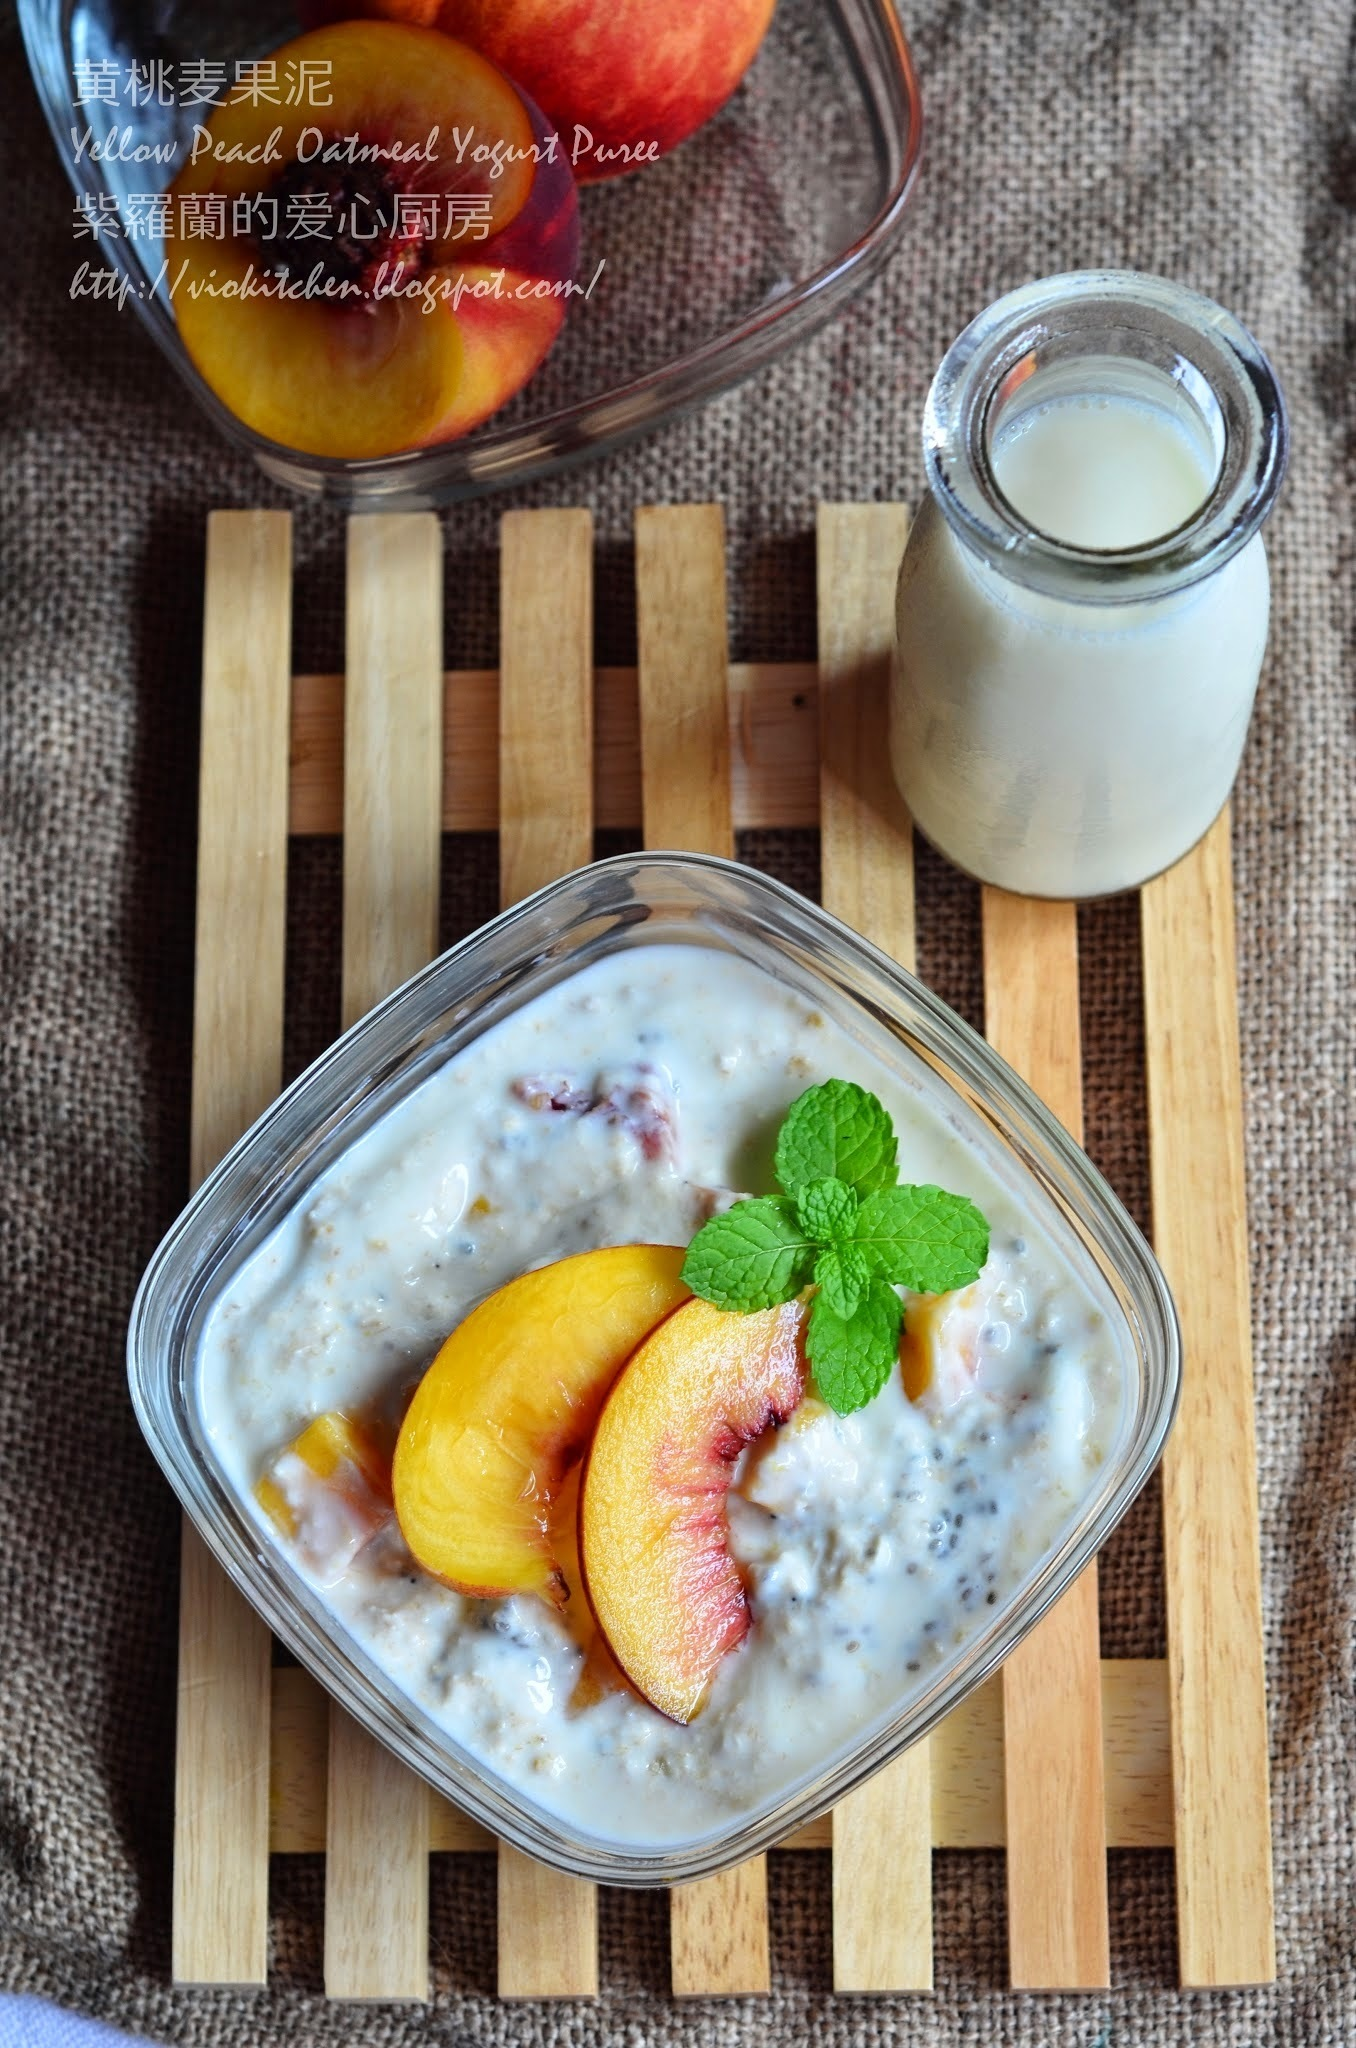 黄桃麦果泥 Yellow Peach Oatmeal Yogurt Puree